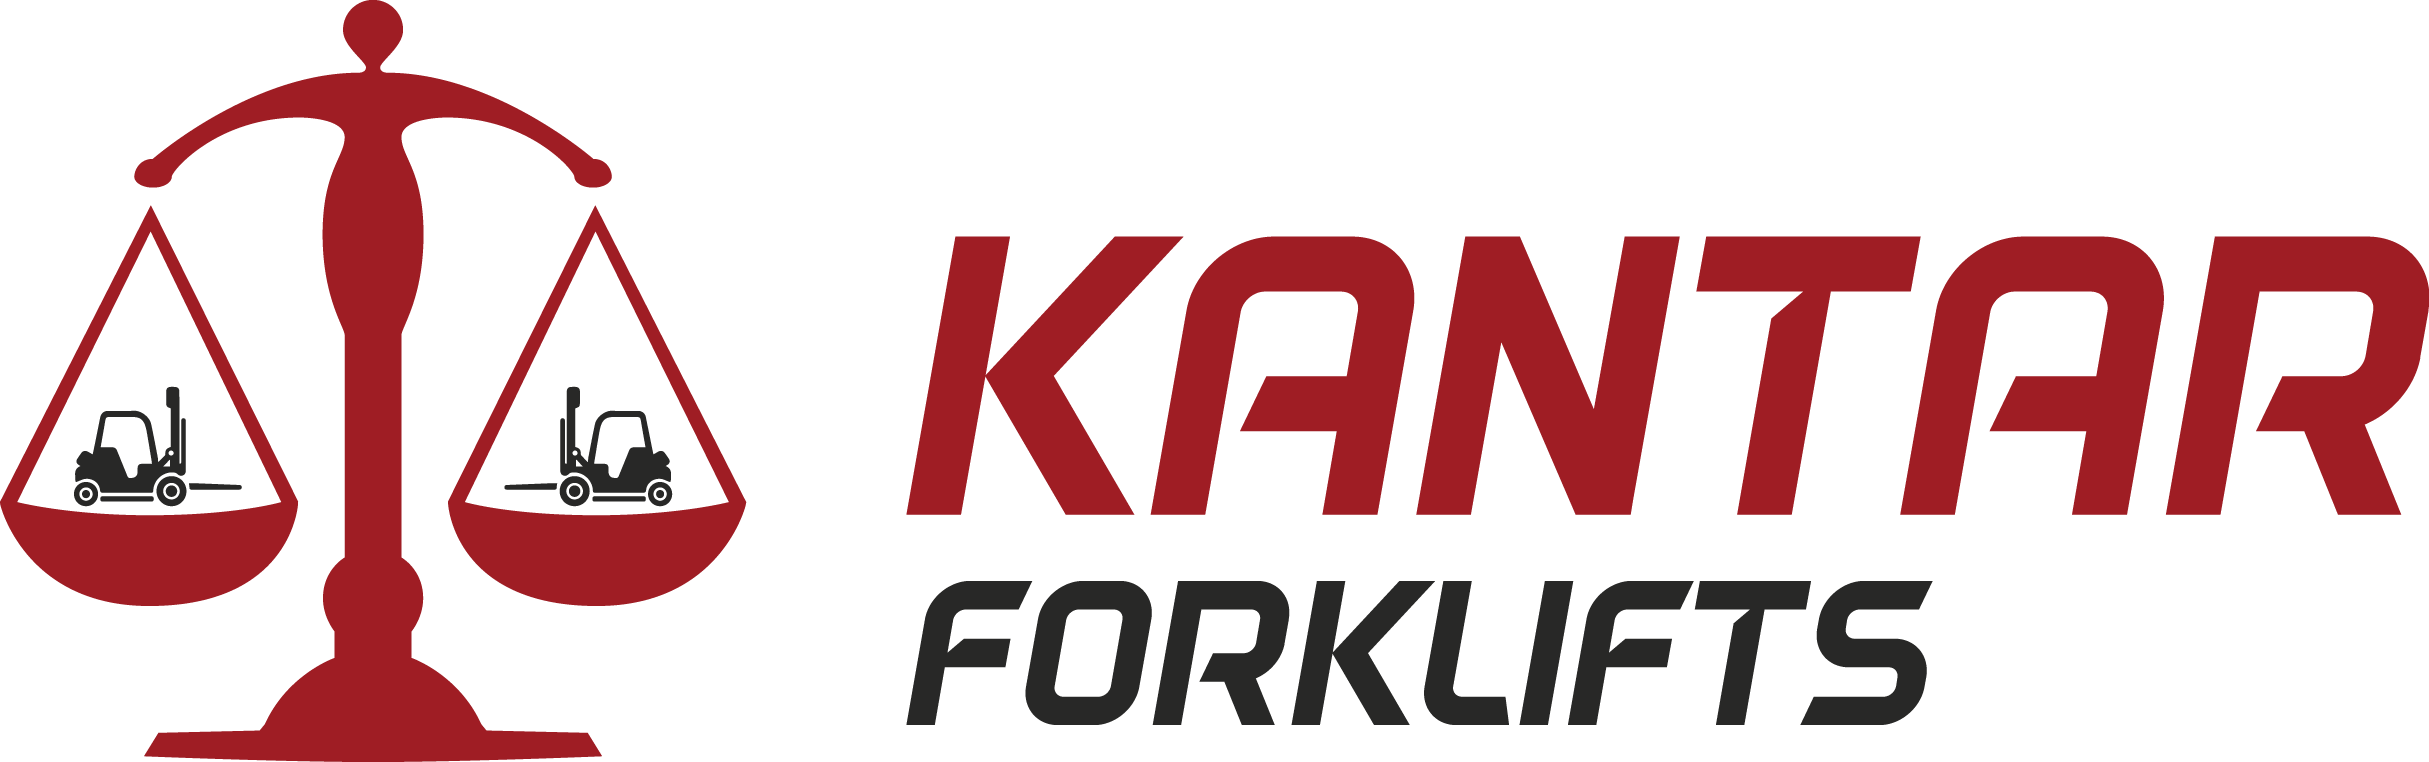 Kantar Forklifts Ltd.